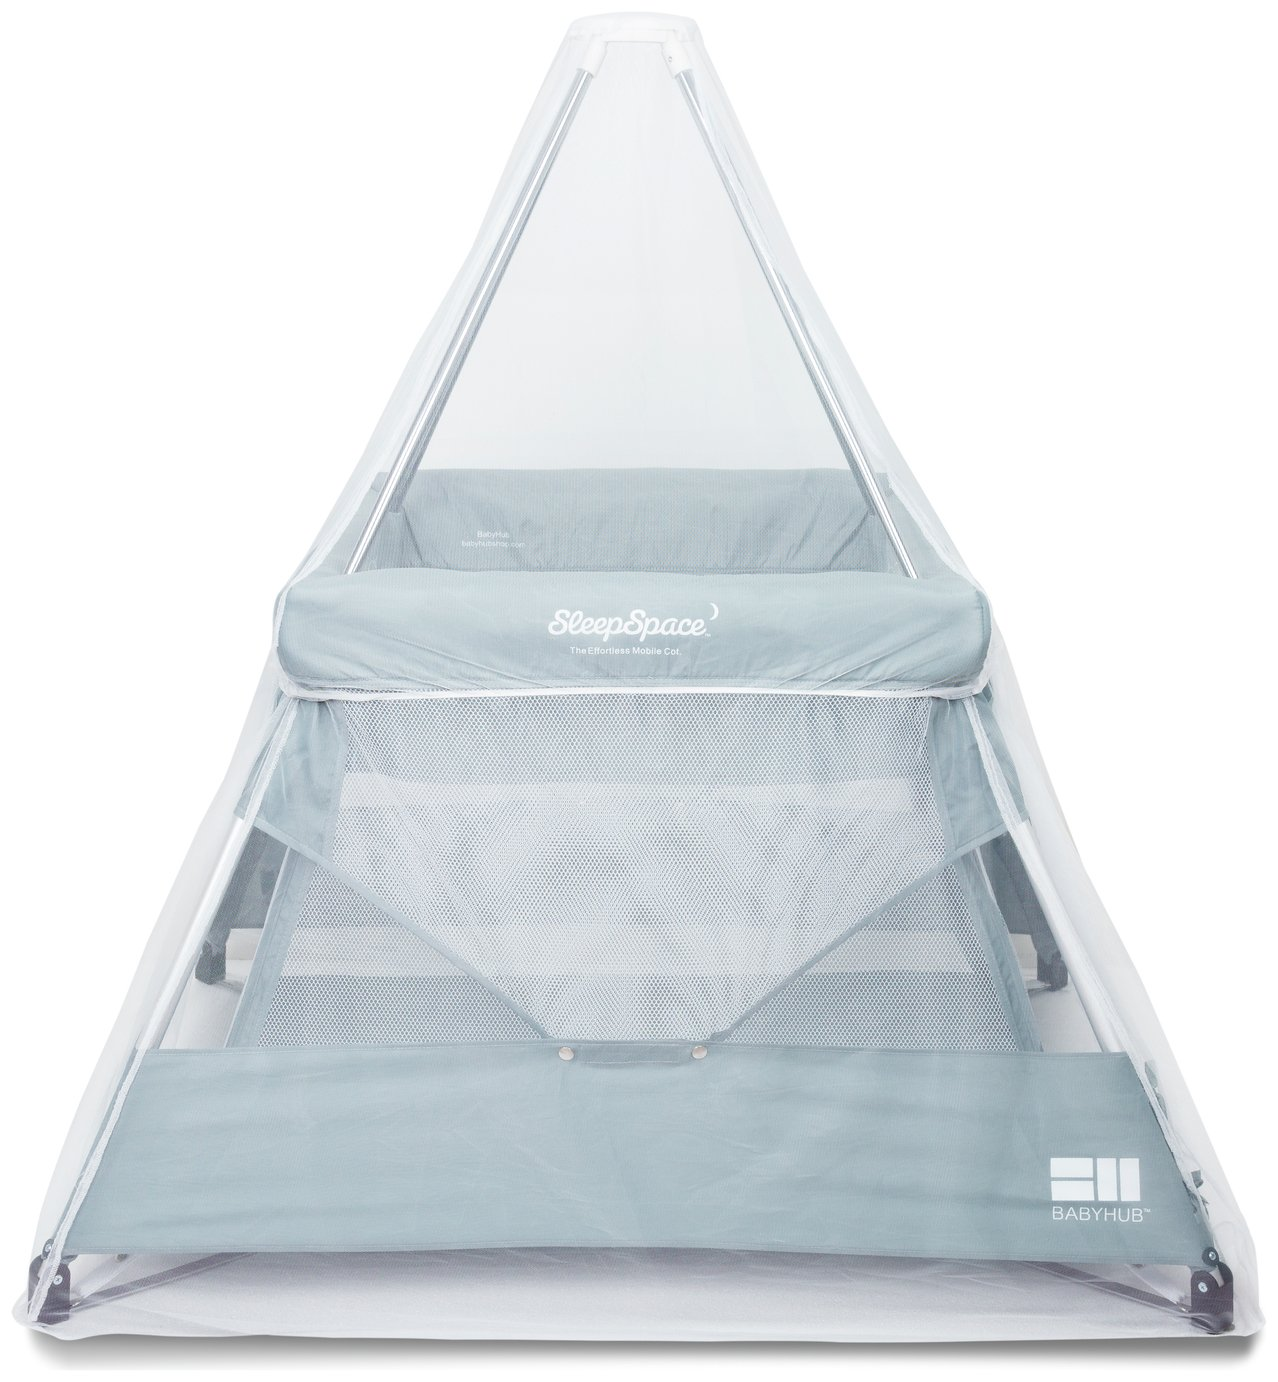 BabyHub SleepSpace Travel Cot with Tepee